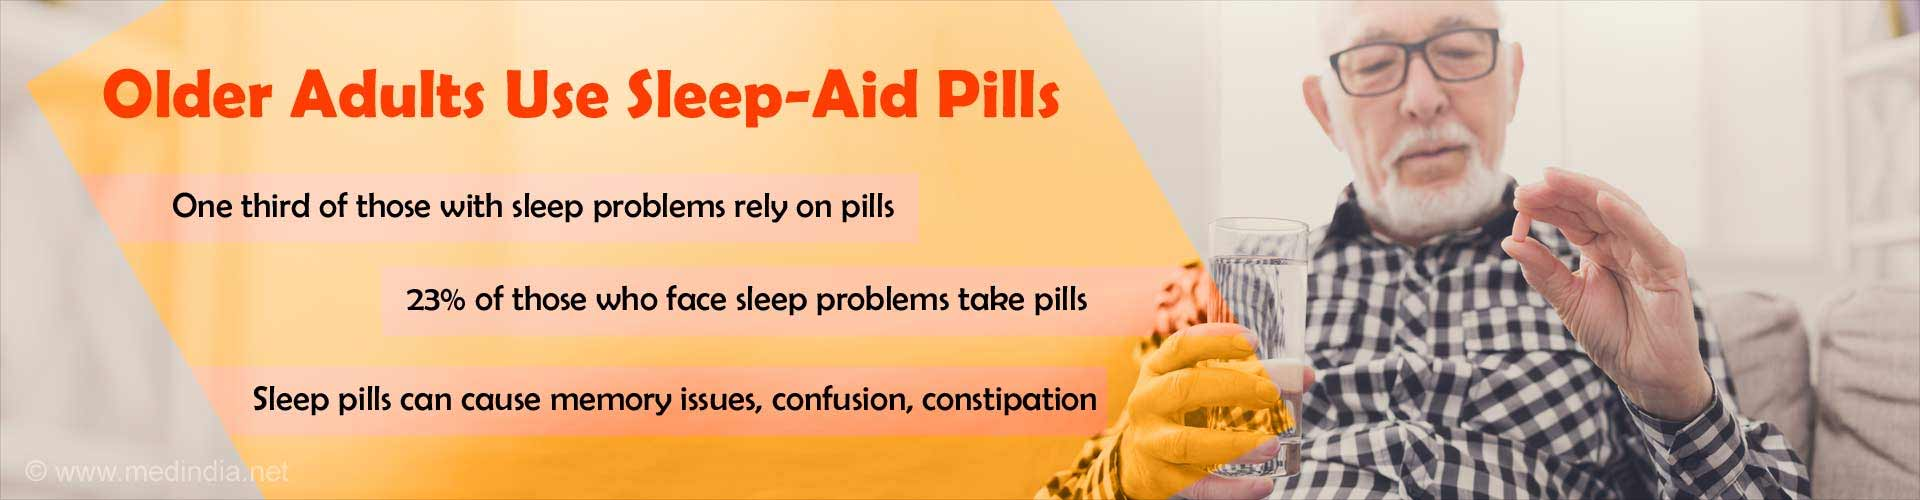 Older Adults Use Sleep-Aid Pills